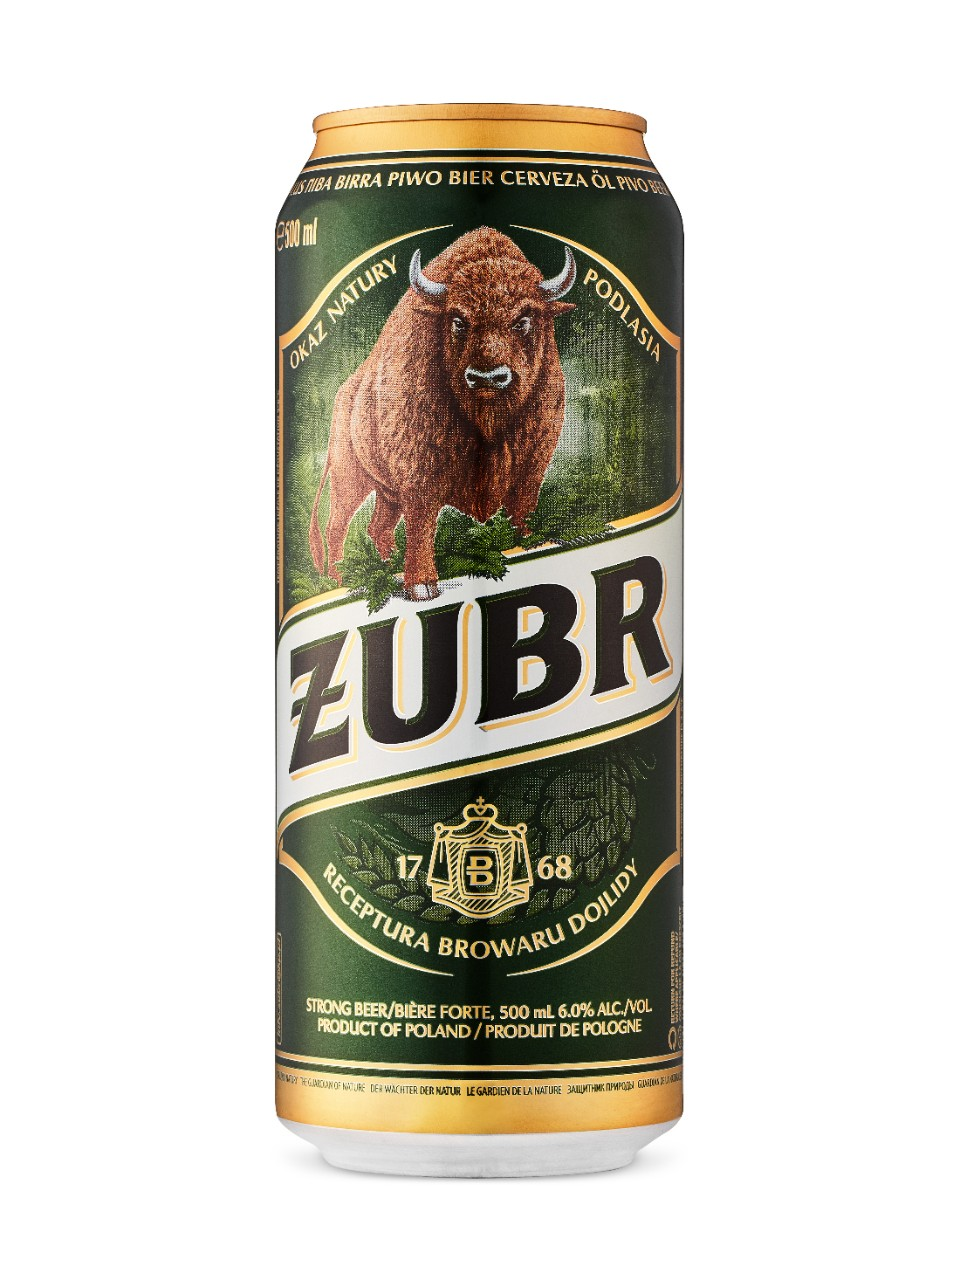 Zubr from LCBO